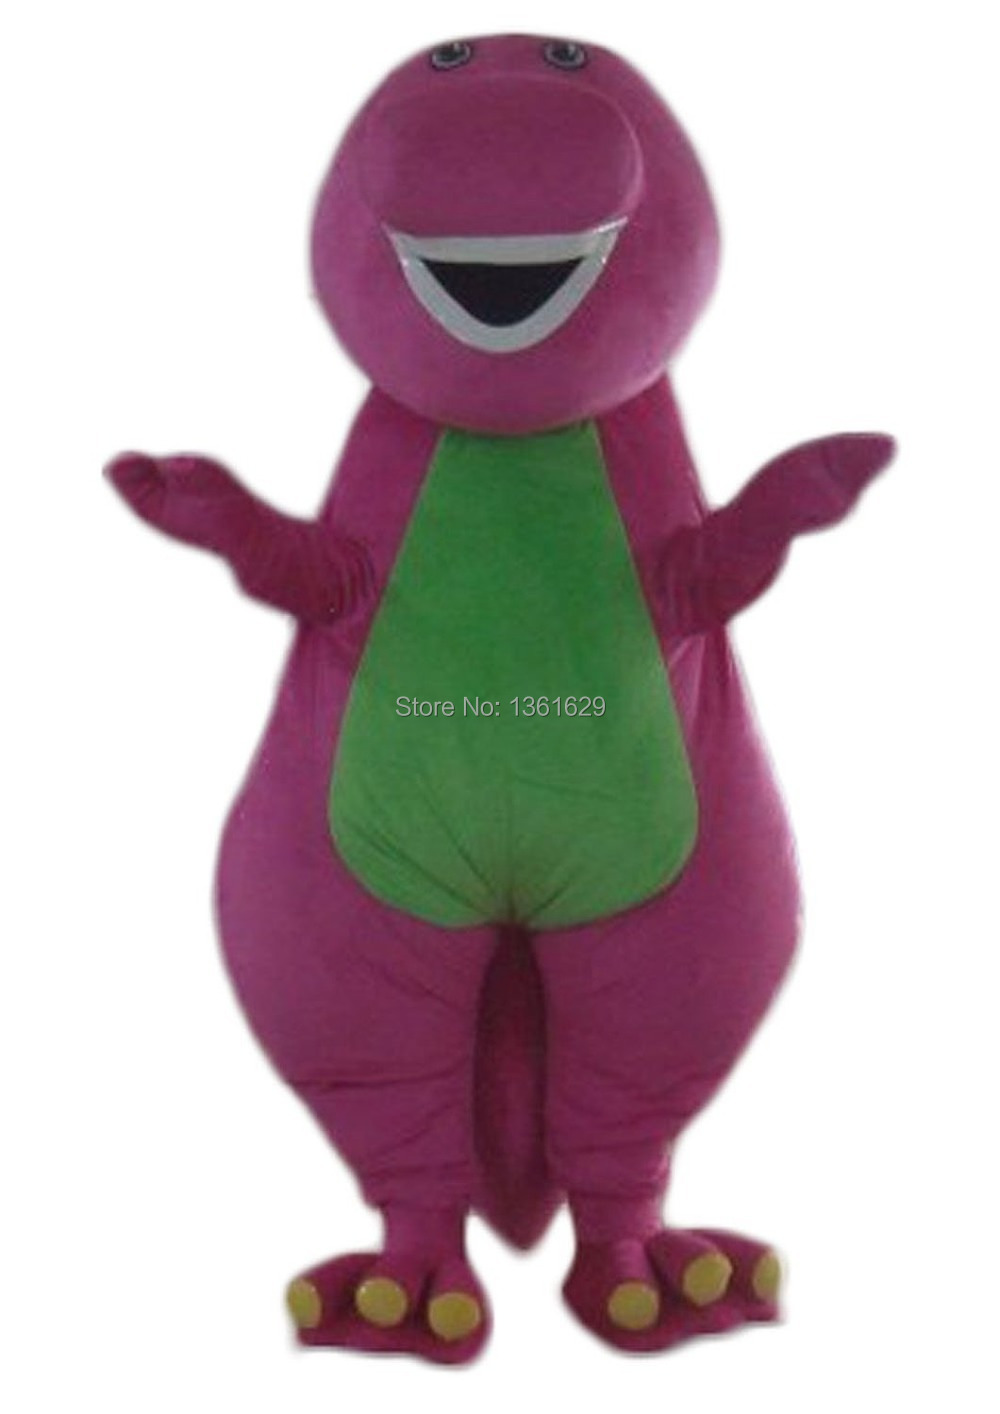 Special adult barney costume dinosaur purple with